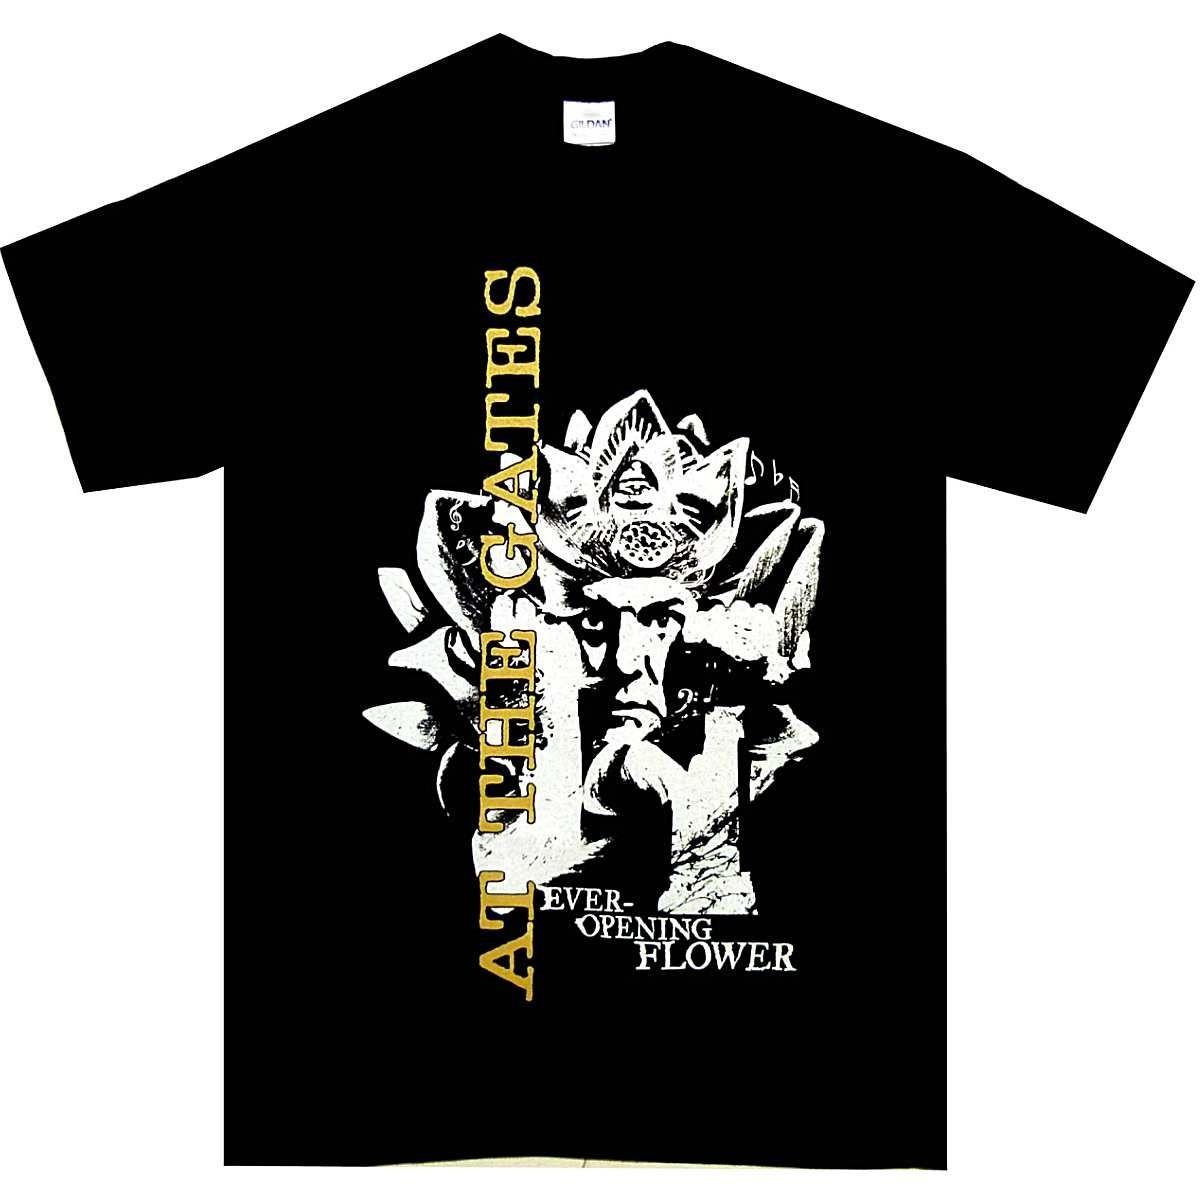 At The Flower Portões nunca abrir Shirt S M L XL XXL 3XL Offcl Death Metal T-shirt T-shirt gola redonda Sleeve camisetas Top Tee